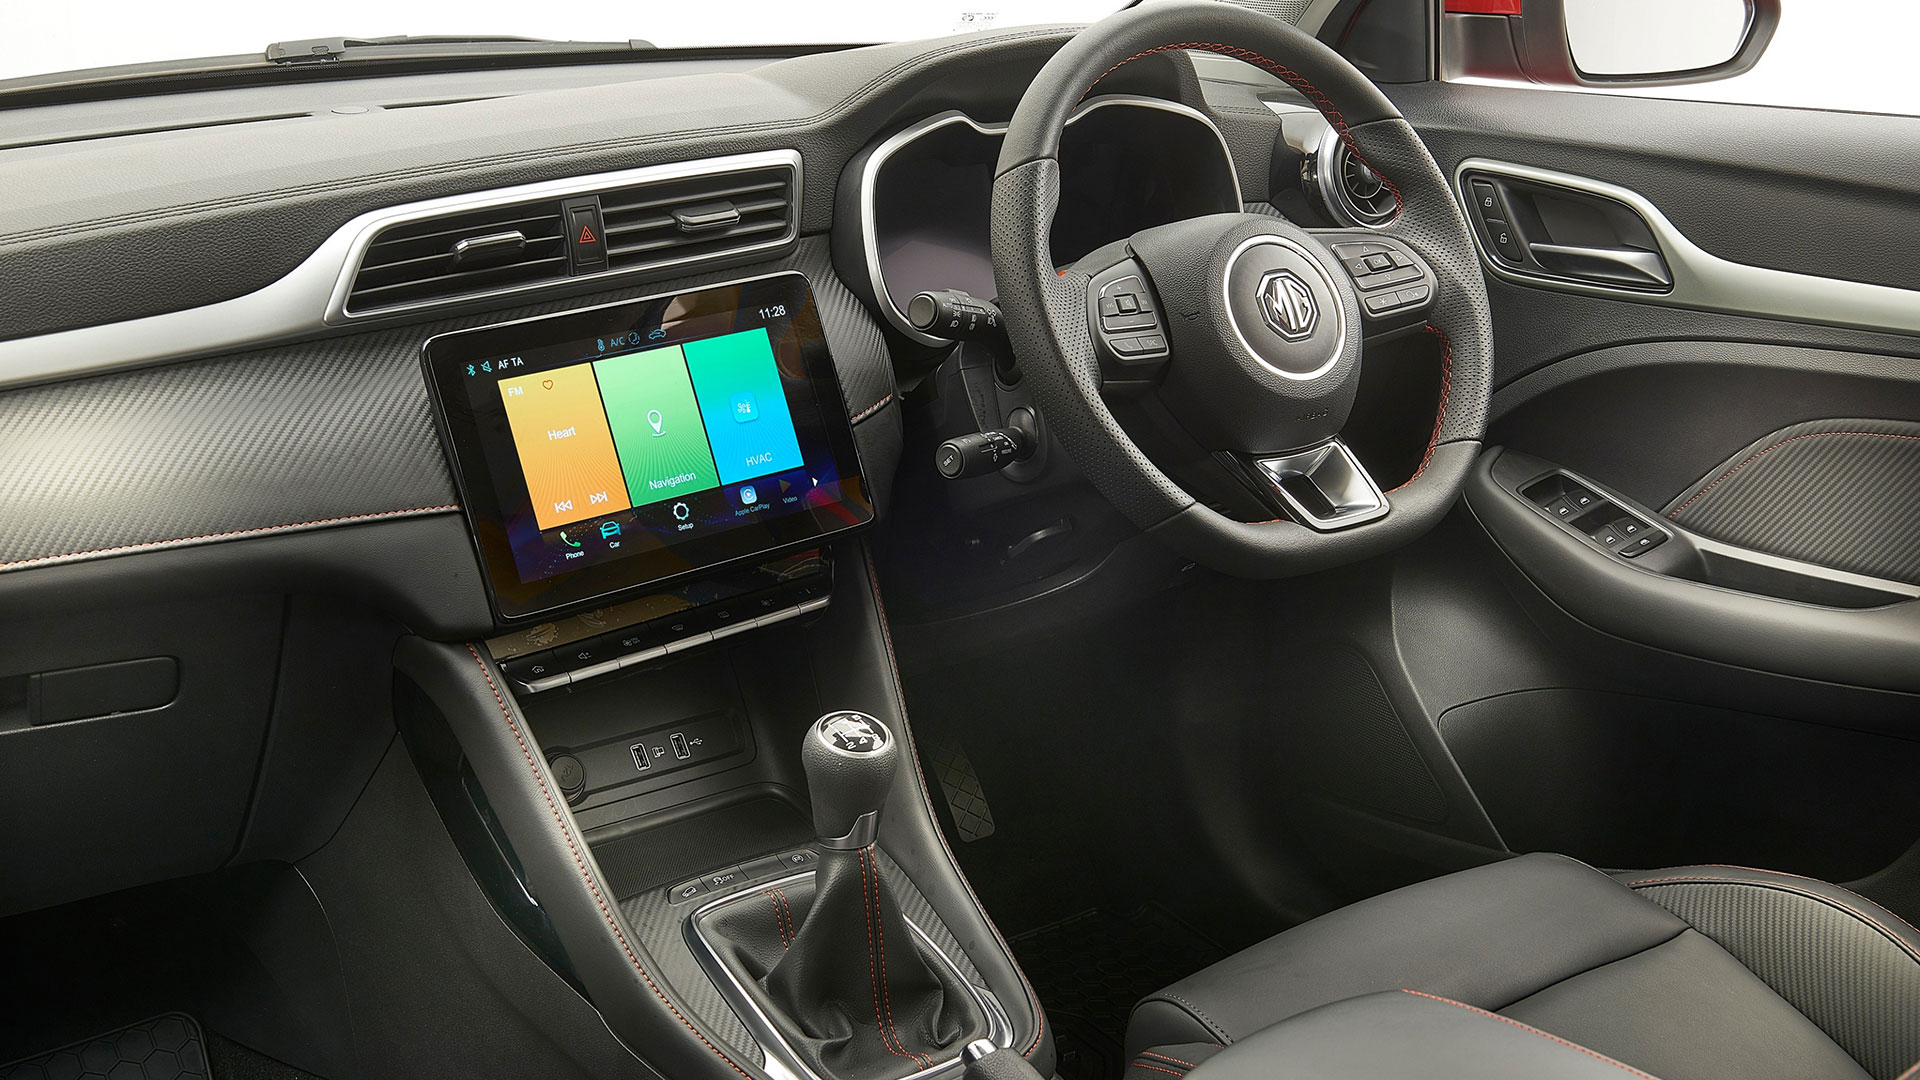 MG ZS 2020 interior